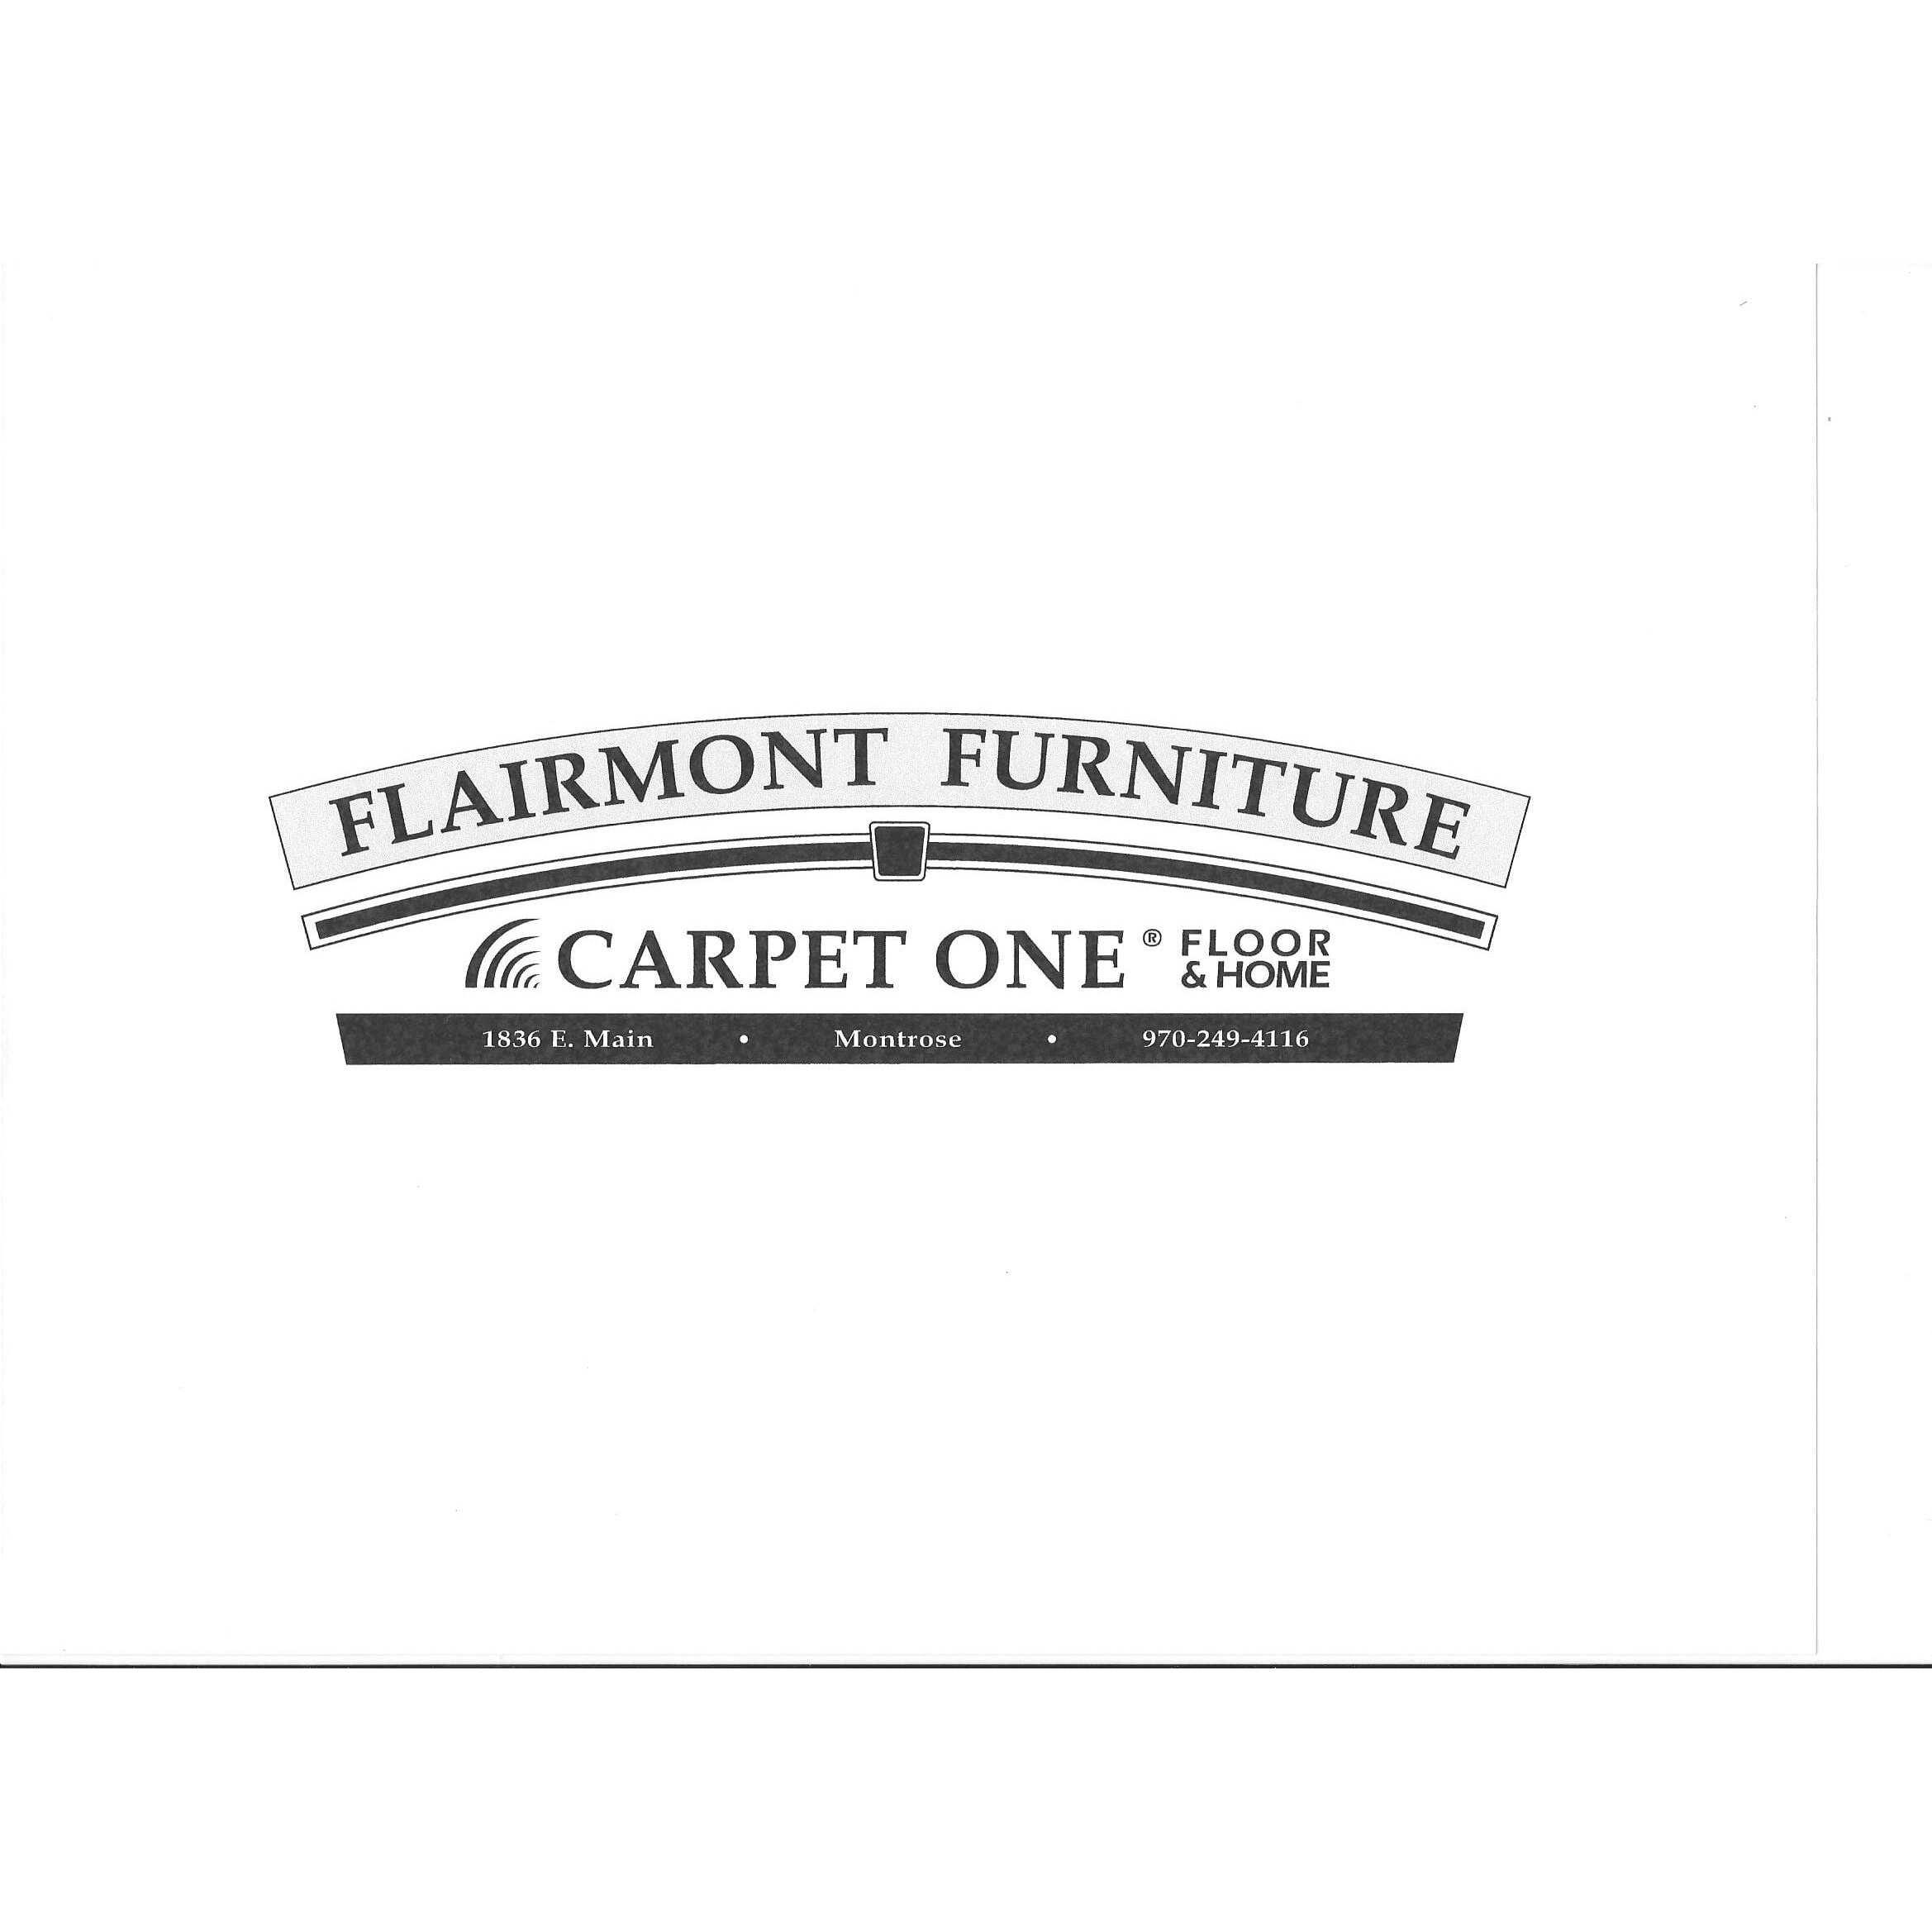 Flairmont Furniture - Carpet One